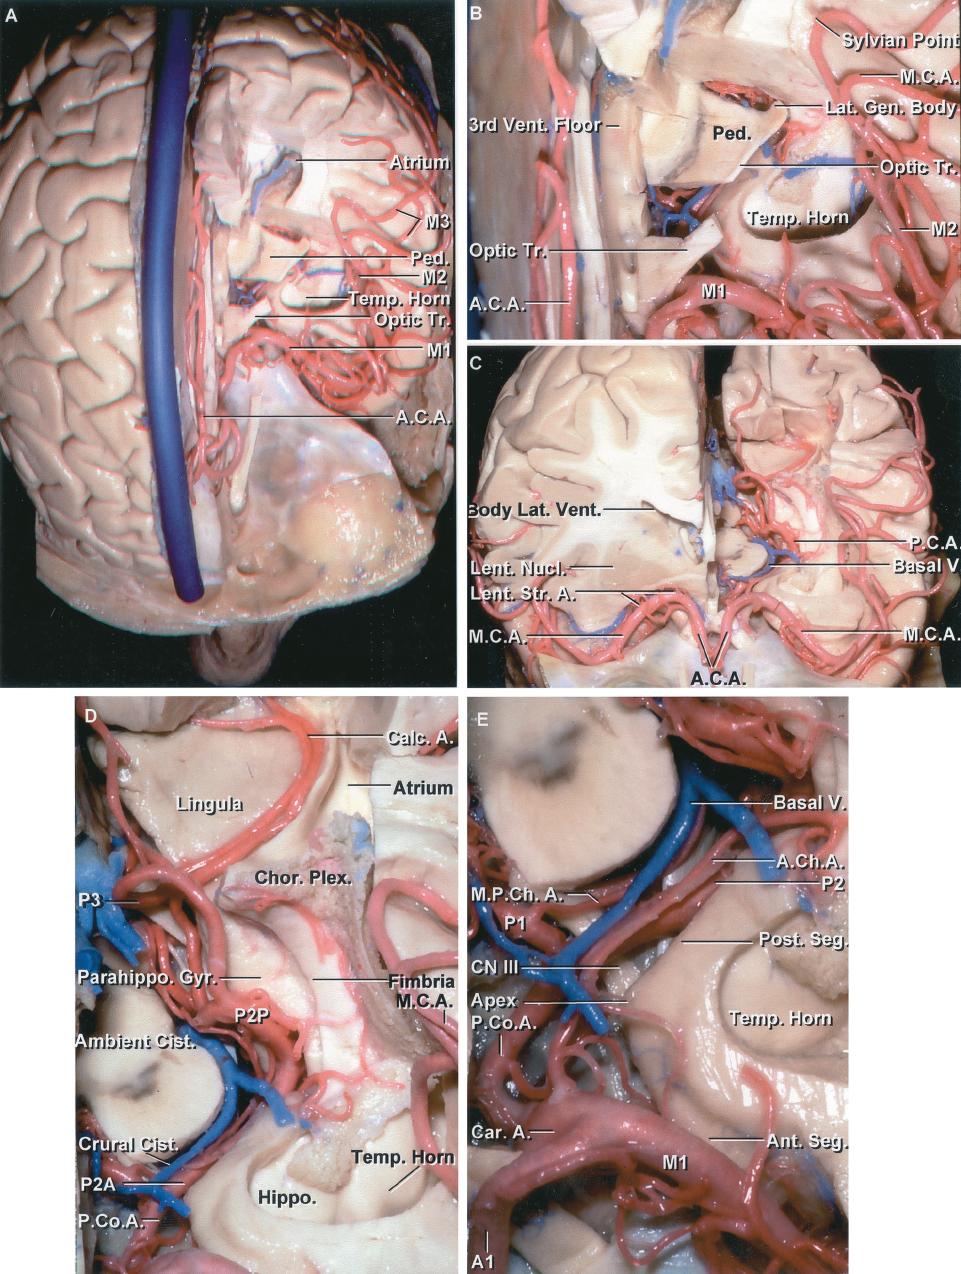 FIGURE 2.12 A-E. Cerebral arteries, superior view. A, the upper part of the left hemisphere has been removed to expose the atrium and temporal horn. Part of the optic tract and cerebral peduncle has been preserved. The ACA crosses above the chiasm and along the medial surface of the hemisphere. The MCA passes laterally below the anterior perforated substance and turns posteriorly in the depths of the sylvian fissure on the medial side of the opercular lips. The M1 segment courses below the anterior perforated substance and ends at the limen insula, the M2 segment crosses the insular, the M3 crosses the opercular lips, and the M4 branches course on the lateral convexity. B, enlarged view. The initial segment of the optic tract has been preserved. The MCA courses laterally in the area above and anterior to the temporal pole and turns posteriorly in the sylvian fissure. The sylvian point, the site at which the last MCA turns away from the insula, coincides with the point where the most posterior of the transverse temporal gyri intersect the insula. The PCA is hidden below the optic tract and cerebral peduncle. C, the anterior part of the right hemisphere has been removed to show the symmetry of the MCAs. Lenticulostriate arteries are exposed below the lentiform nucleus. The upper part of the left cerebral peduncle and optic tract has been removed to expose the PCA and basal veins in the crural and ambient cisterns. D, enlarged view. The P2 arises at the level of the PComA and passes around the brainstem. The anterior part of the P2, the part that passes through the crural cistern, is designated the P2A, or crural segment, and the posterior part that courses in the ambient cistern is designated the P2P, or ambient segment. The P3 is located in the quadrigeminal cistern and the P4 segment consists of the cortical branches. The calcarine branch courses deeply within the calcarine sulcus, roofed above by the cuneus, which has been removed to exposed the floor of the calcar